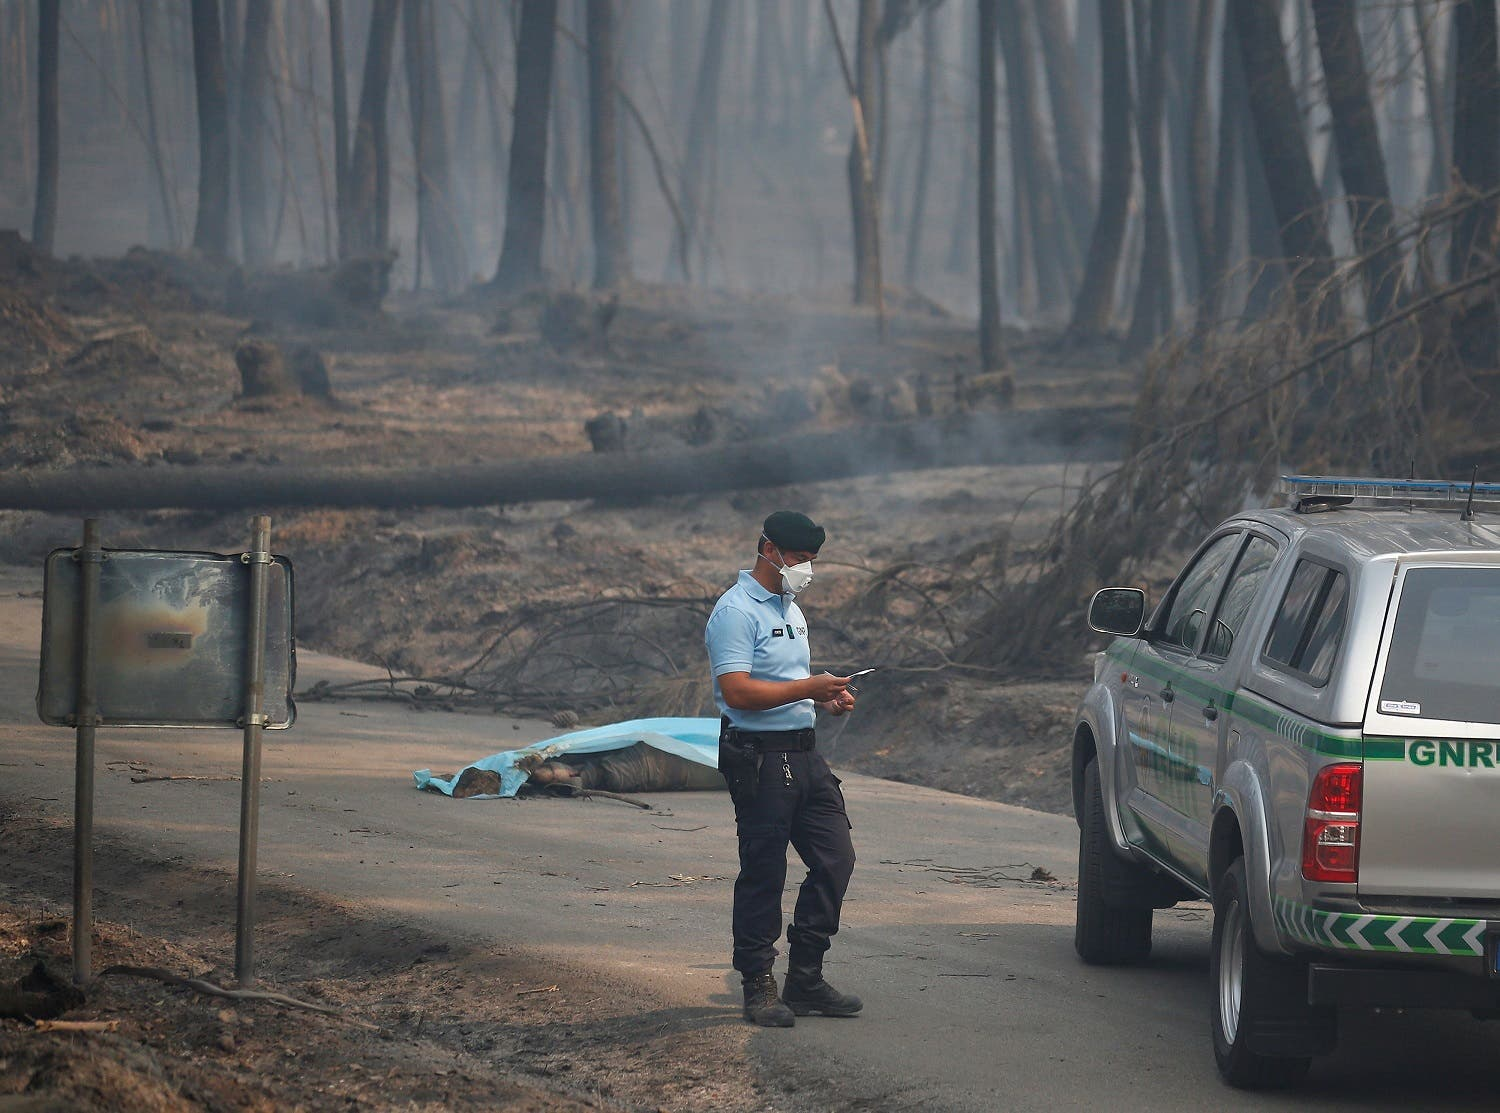 A policeman stands near a victim of a forest fire on the IC8 motorway near Pedrogao Grande, in central Portugal, June 18, 2017. (Reuters)